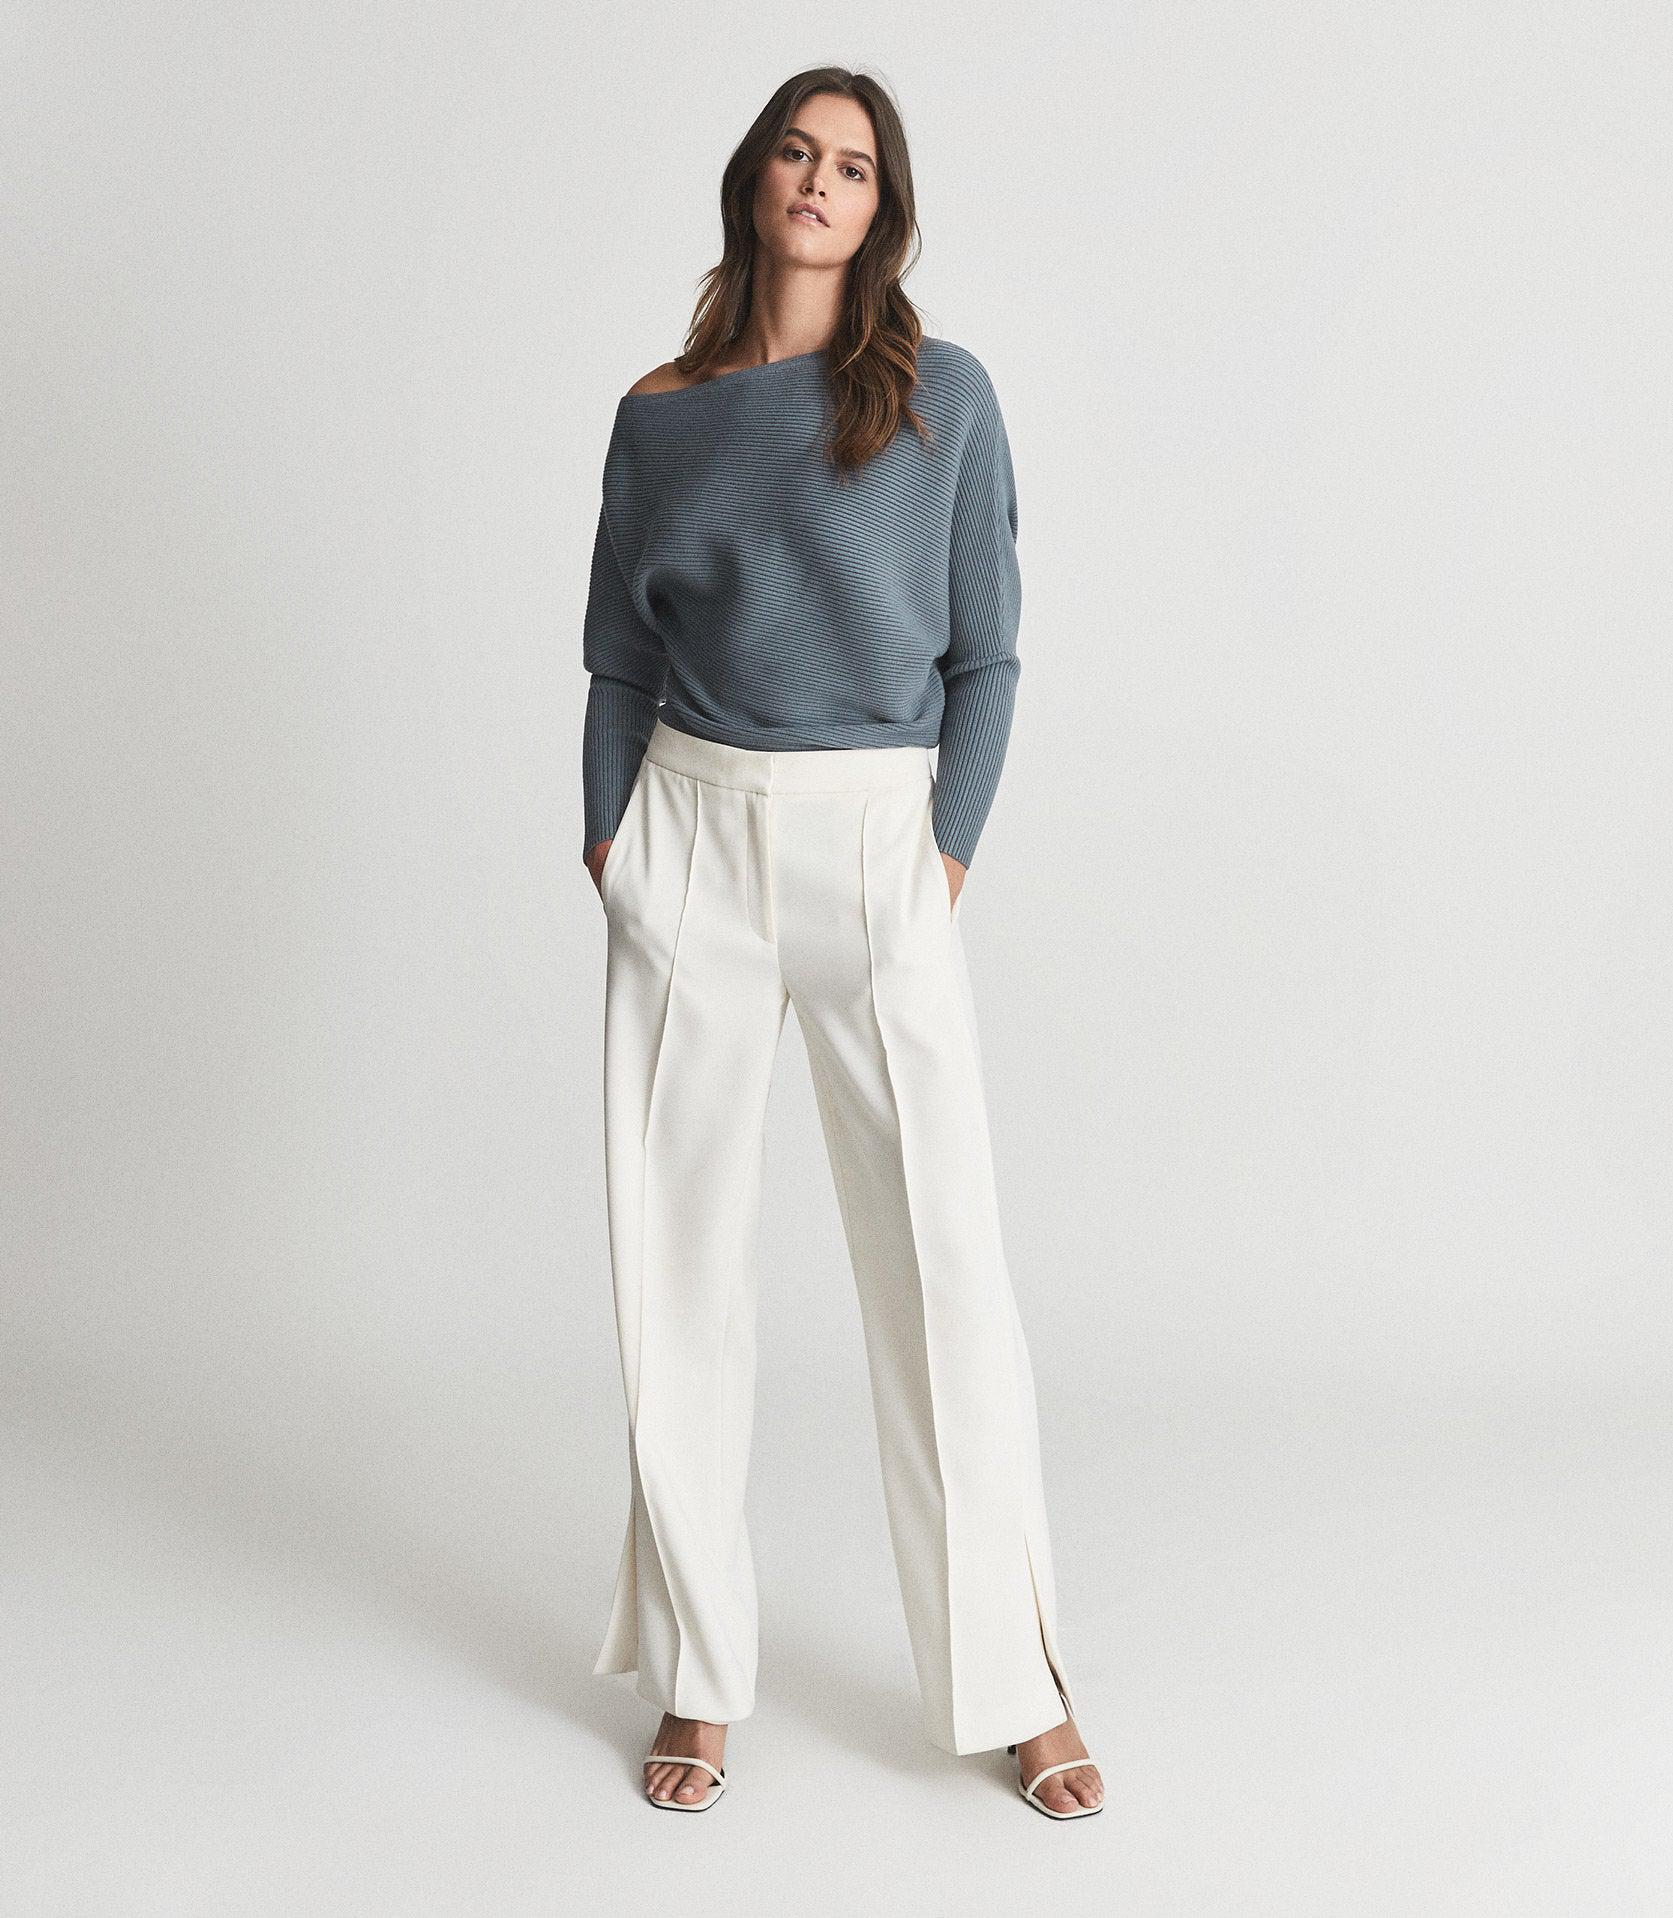 LORNA - ASYMMETRIC KNITTED TOP